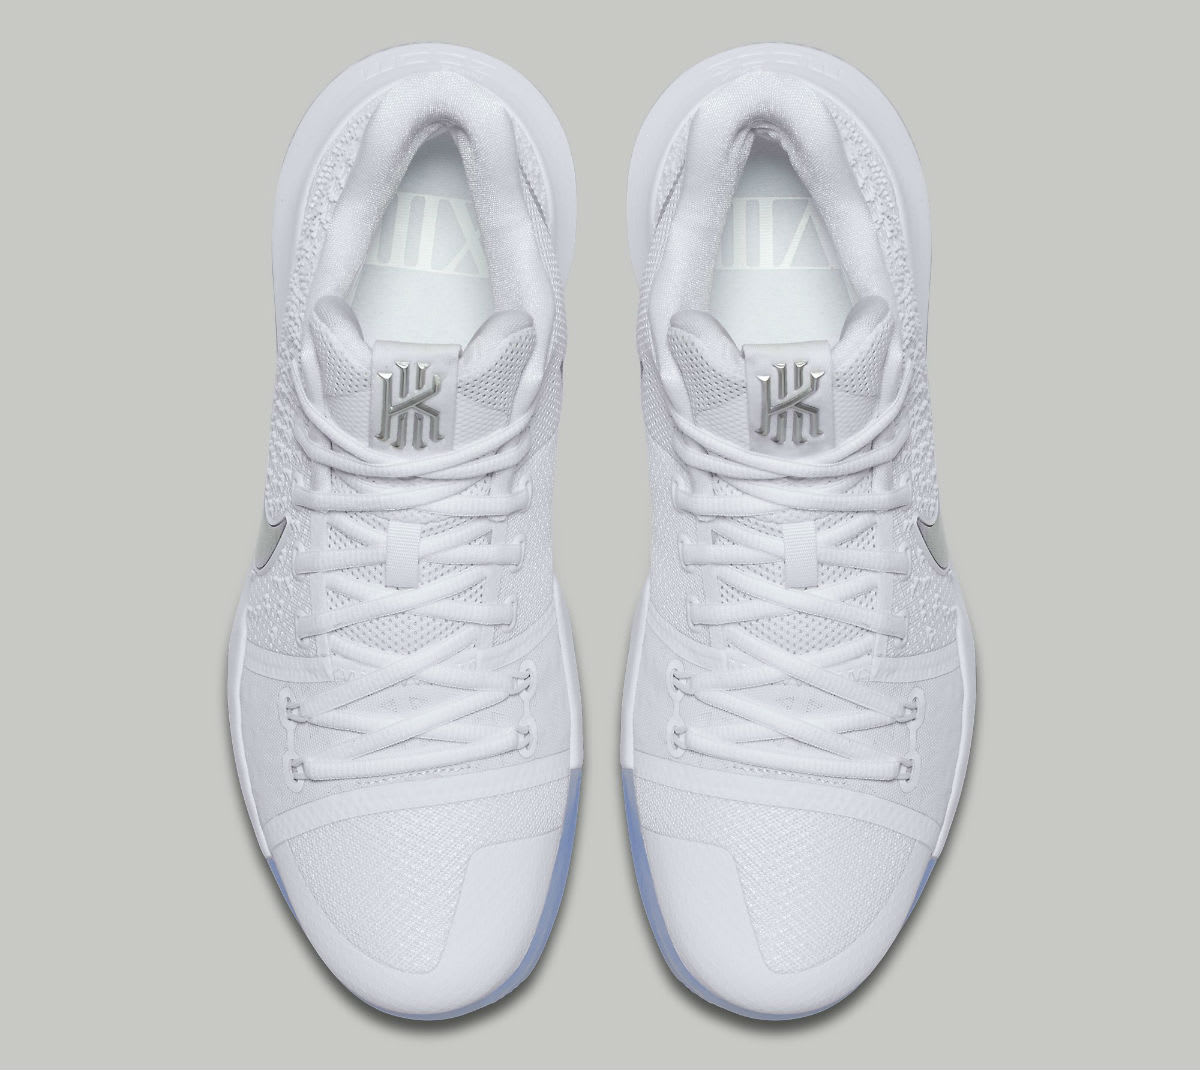 9b8c36ee213df6 italy 2019 outlet ba495 ebf8d nike kyrie 3 chrome release date top 852395  103 7d1b6 93876